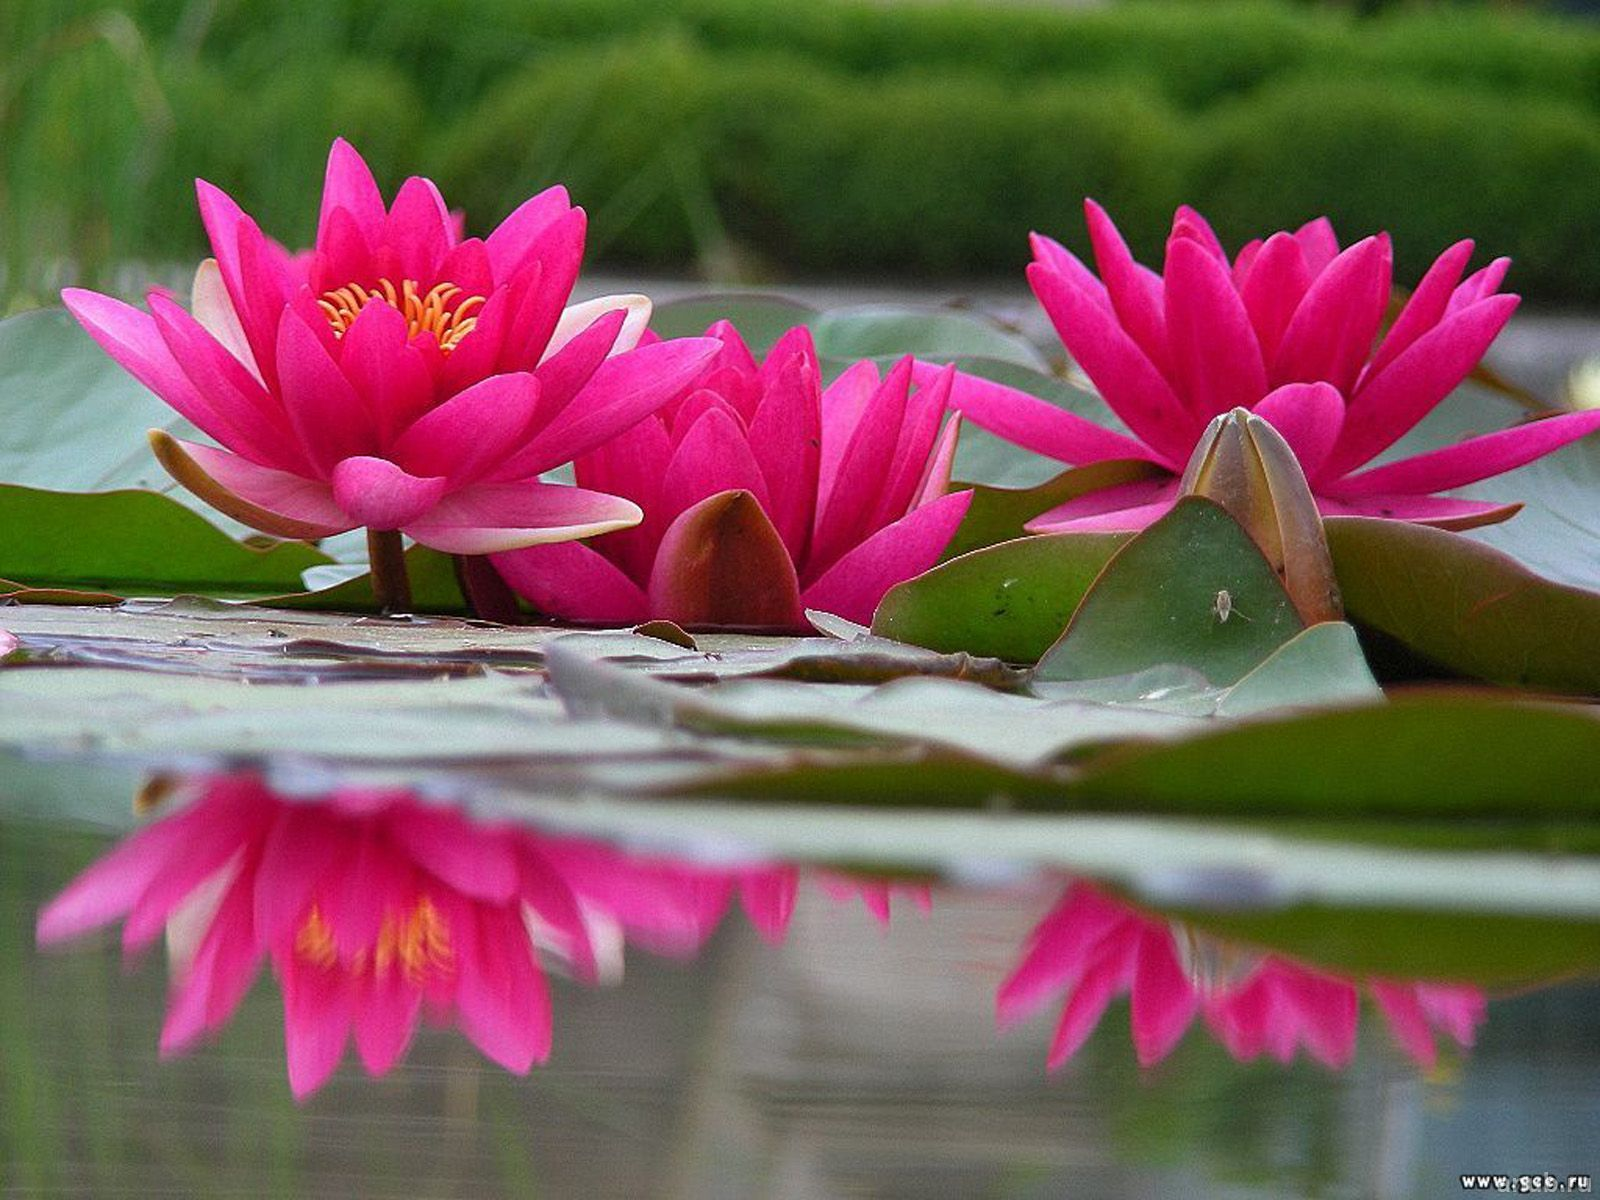 Water Lily Wallpaper High Quality Resolution Lily Wallpaper Hot